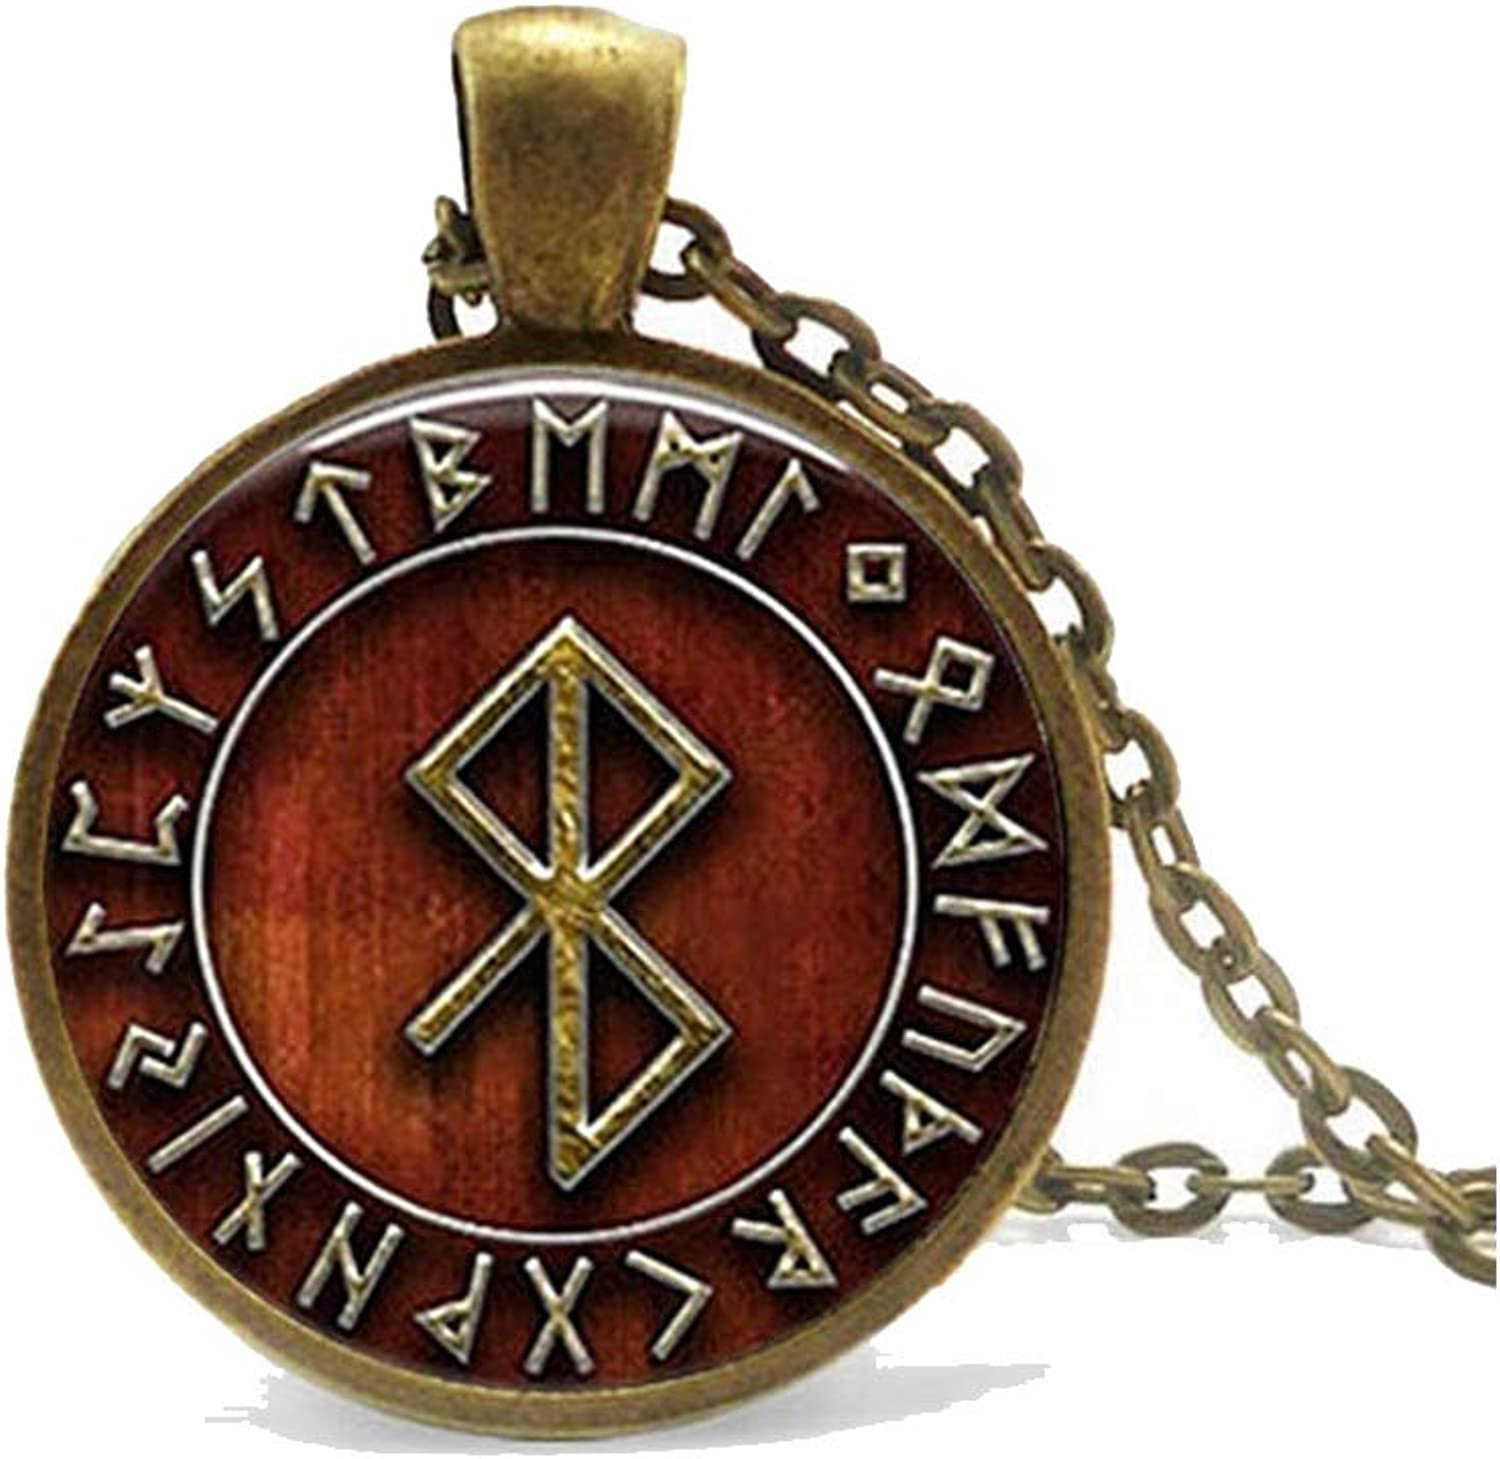 Zoe-clothes-store Vintage Viking Peace Rune in Runic Circle Pendant Viking Amulet Symbolism Steampunk Style Jewelry Glass Cabochon Necklace